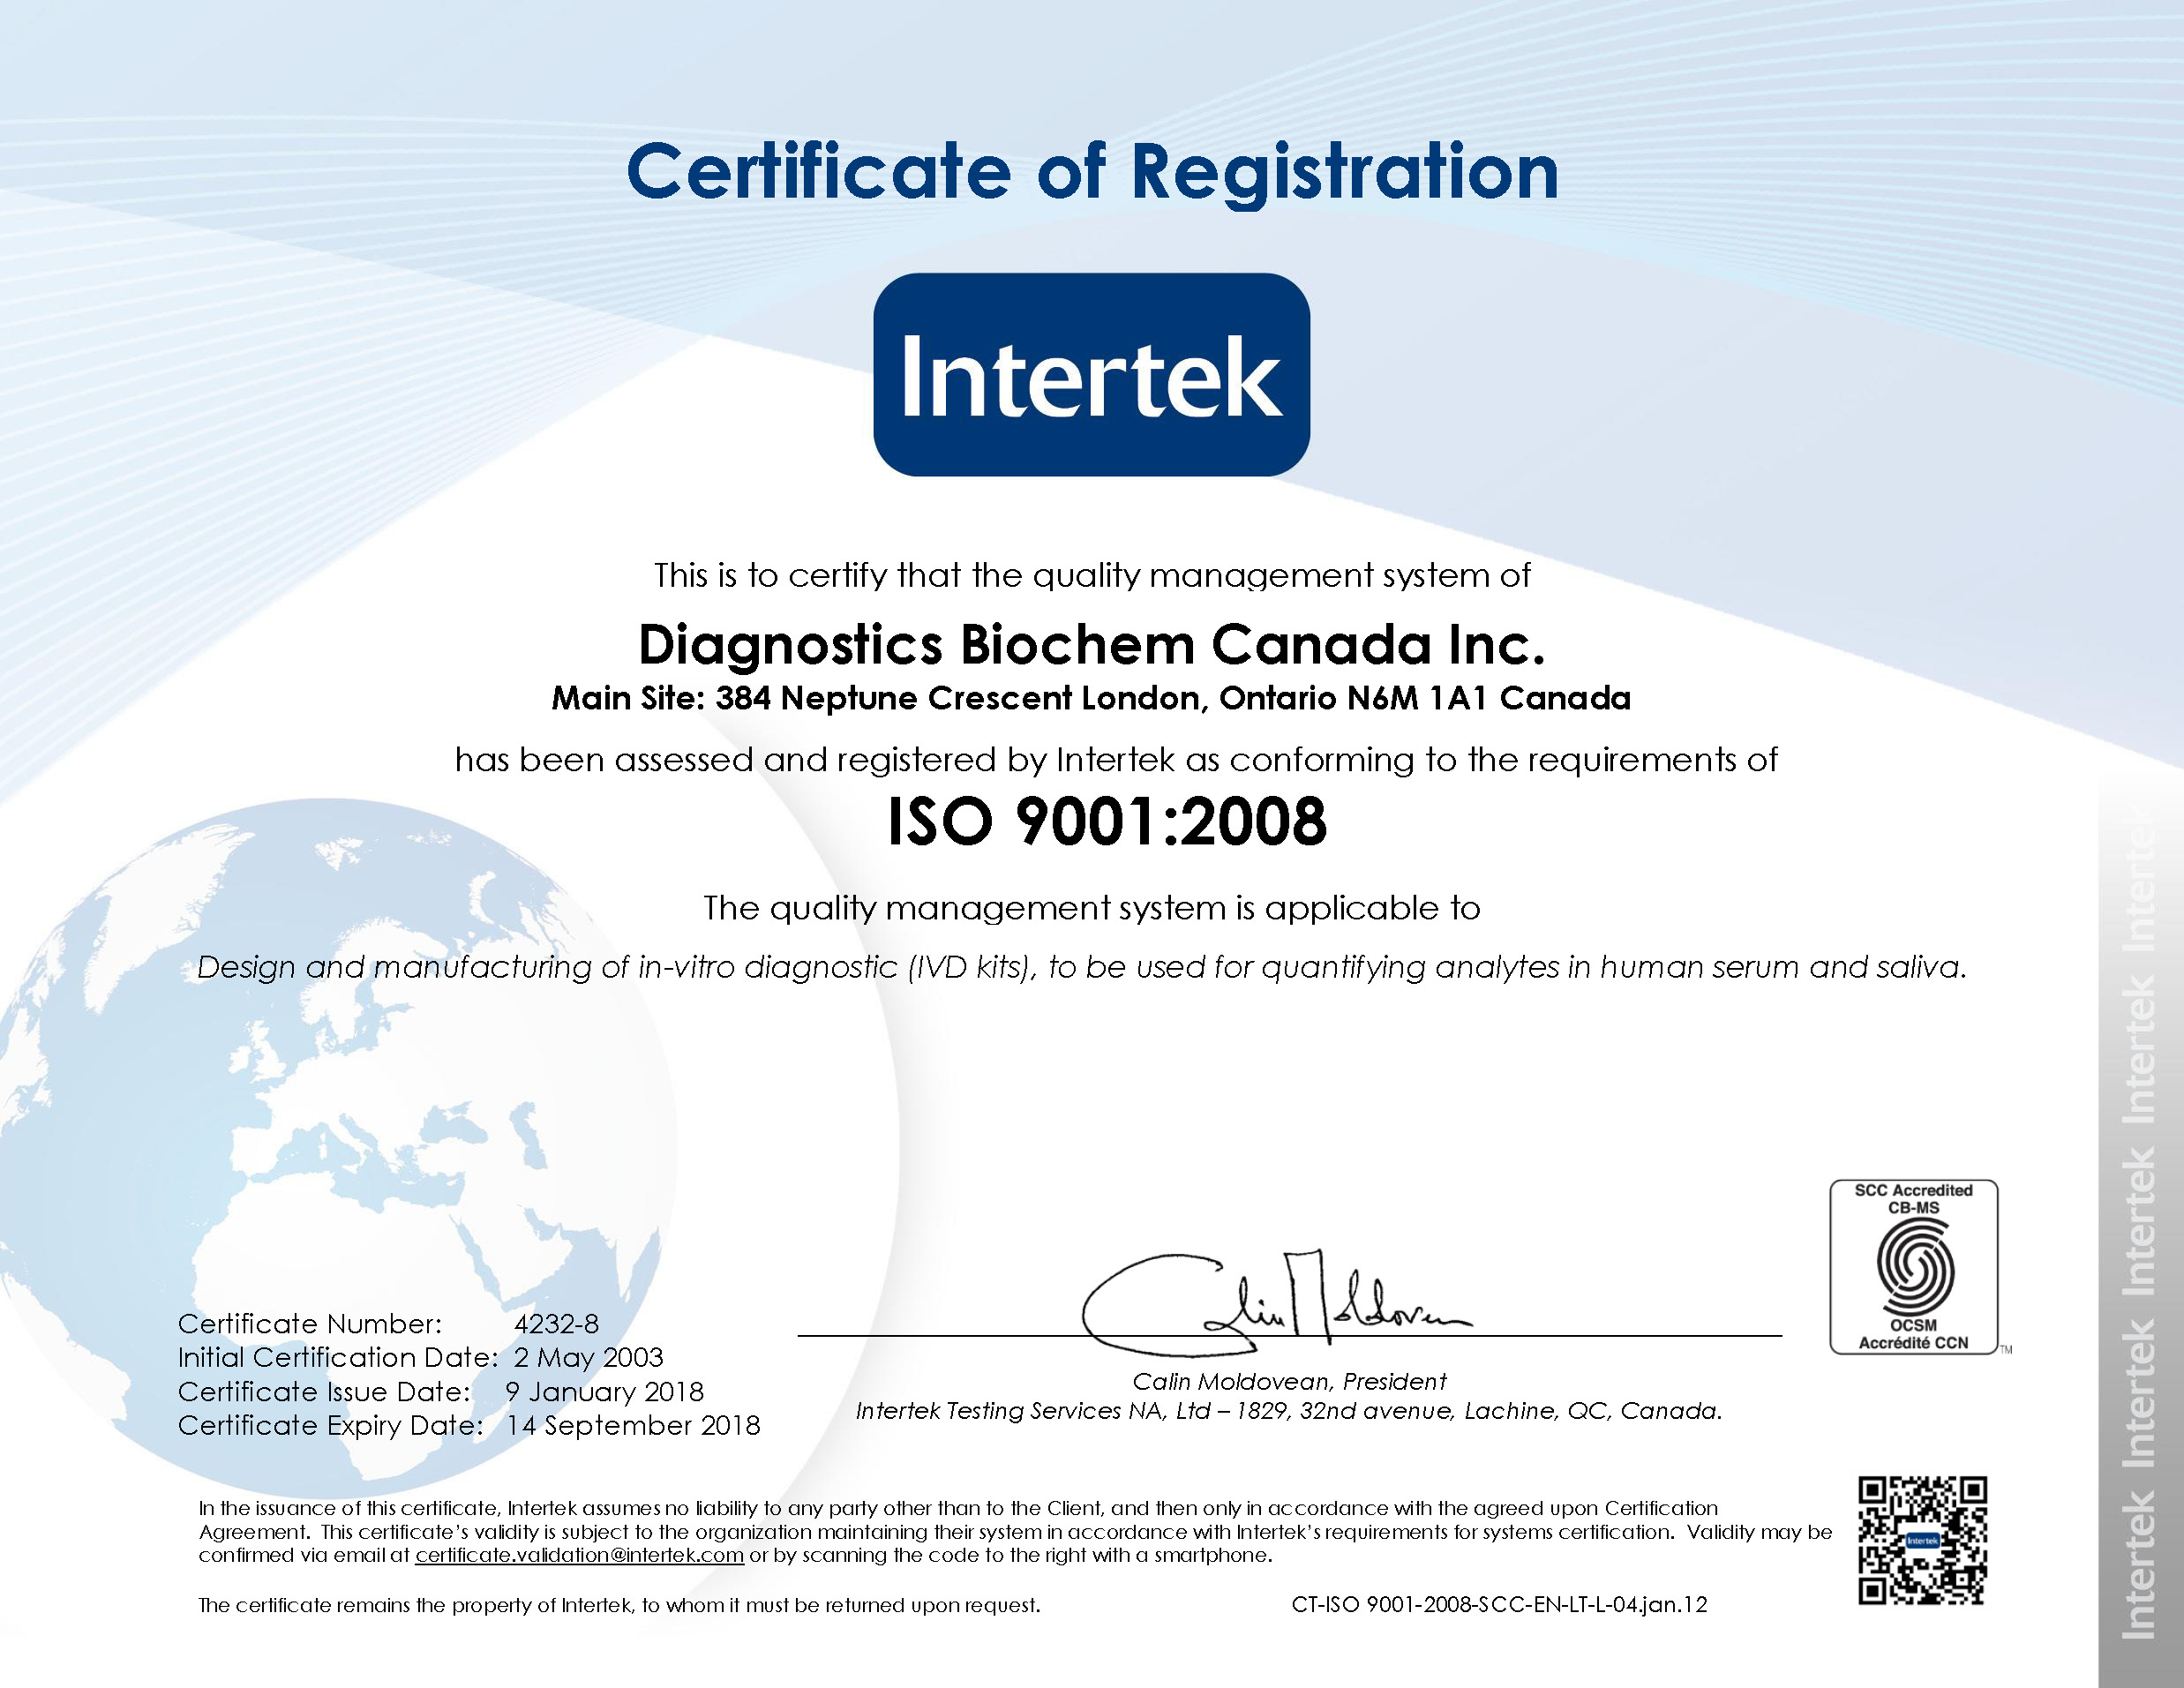 Diagnostics Biochem Canada Inc. ISO 9001:2008 - Certificate of Registration